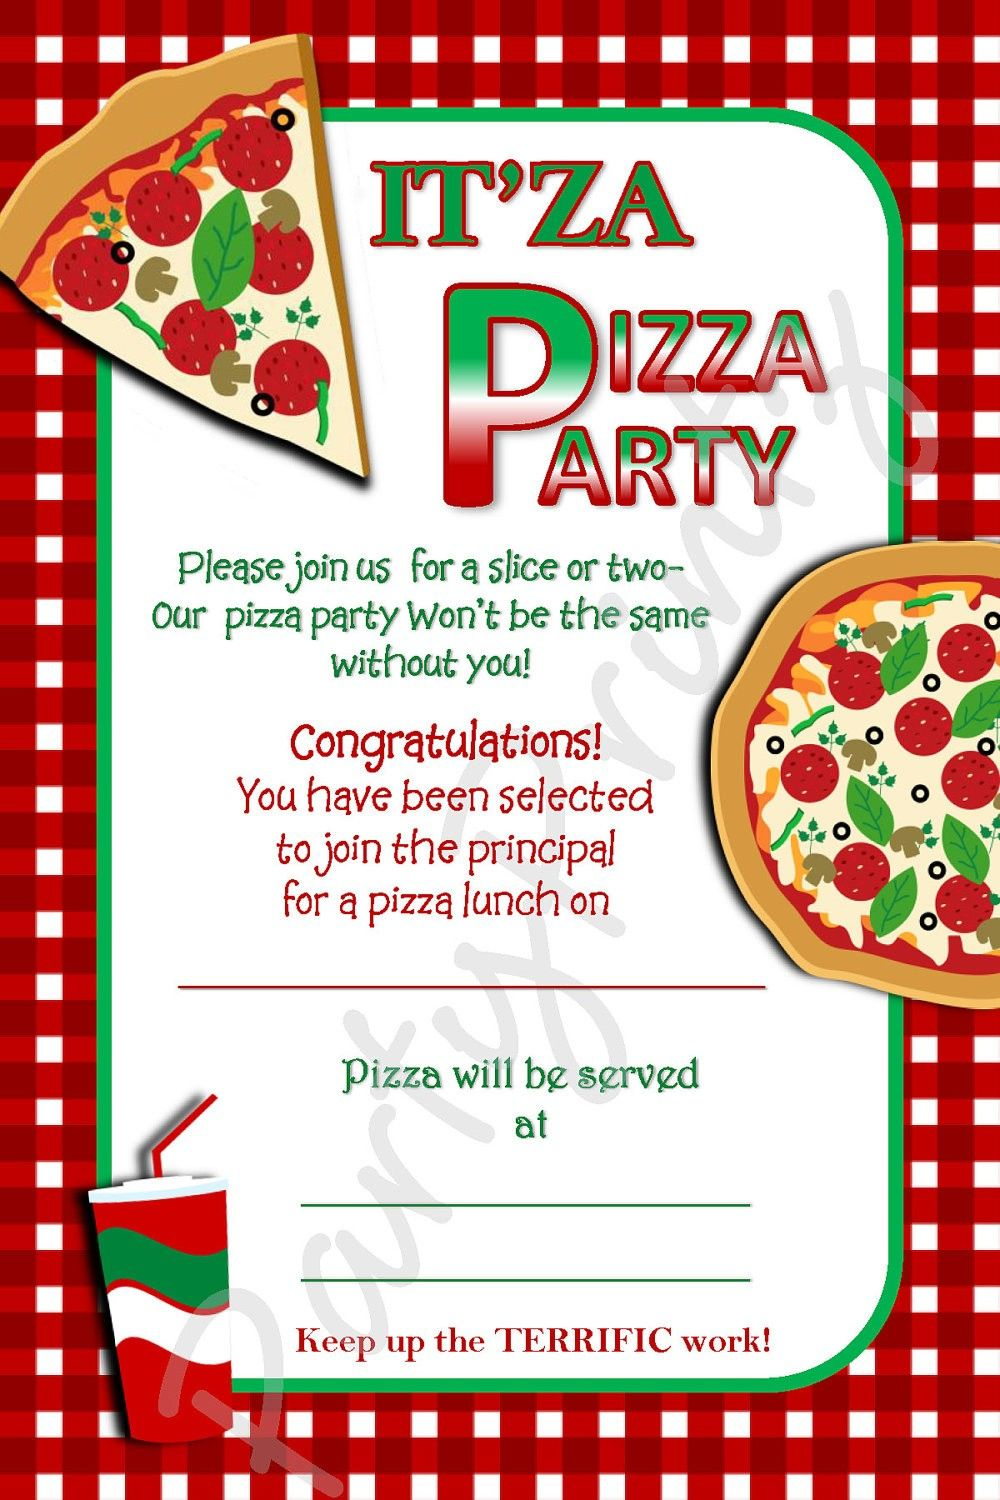 Pizza Party Invitation Template Free | Party Ideas | Pinterest ...